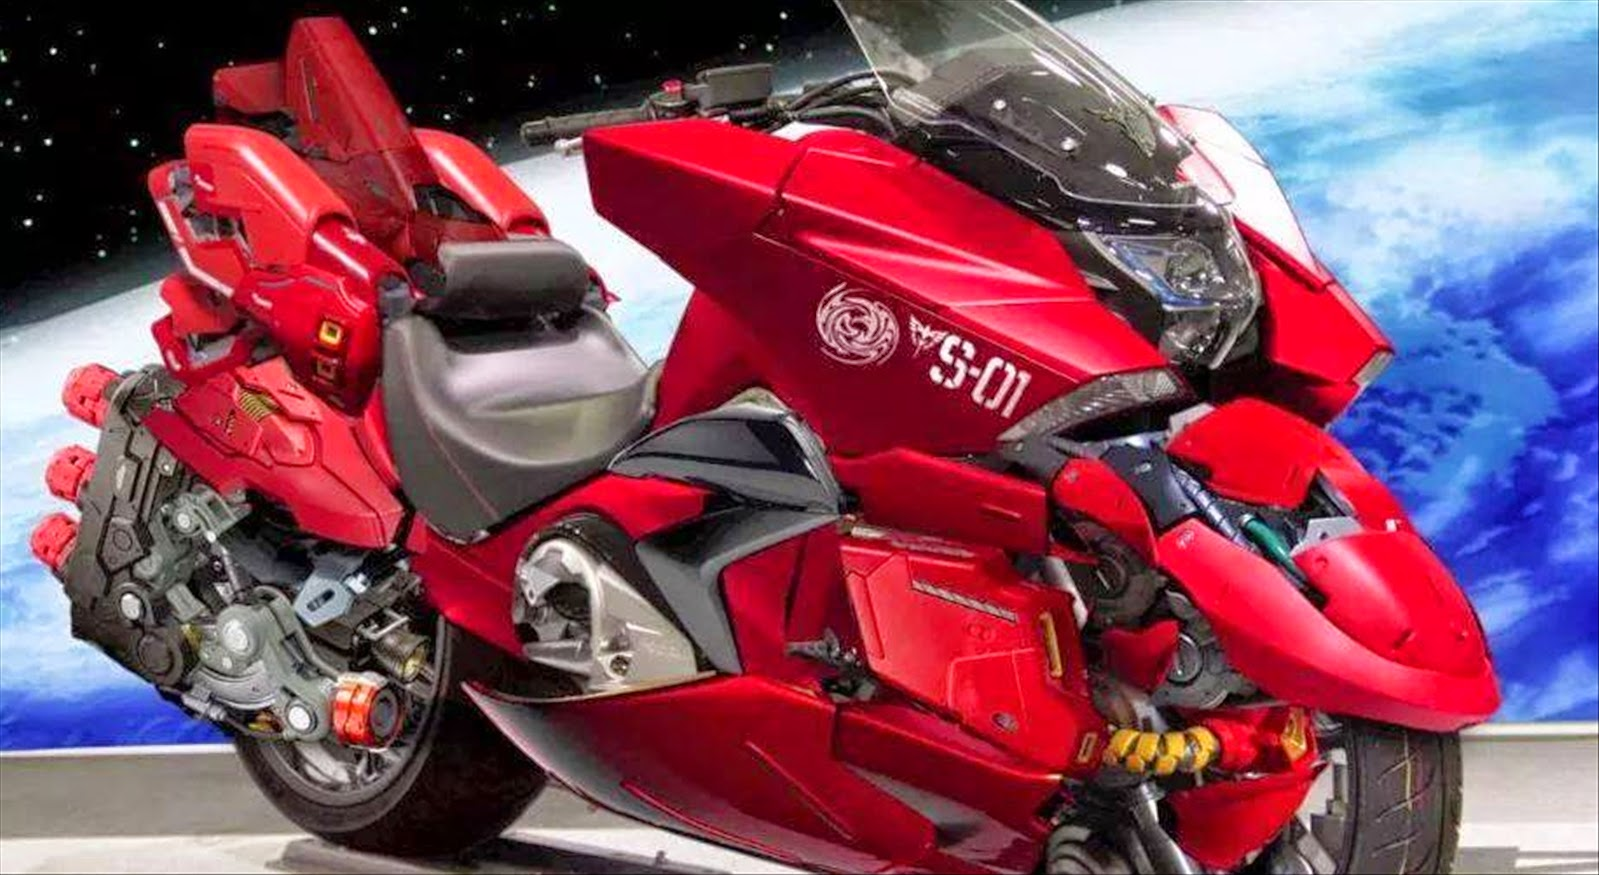 Photoshopped: HONDA NM4 Red Comet Motorbike - Gundam Kits Collection News and Reviews